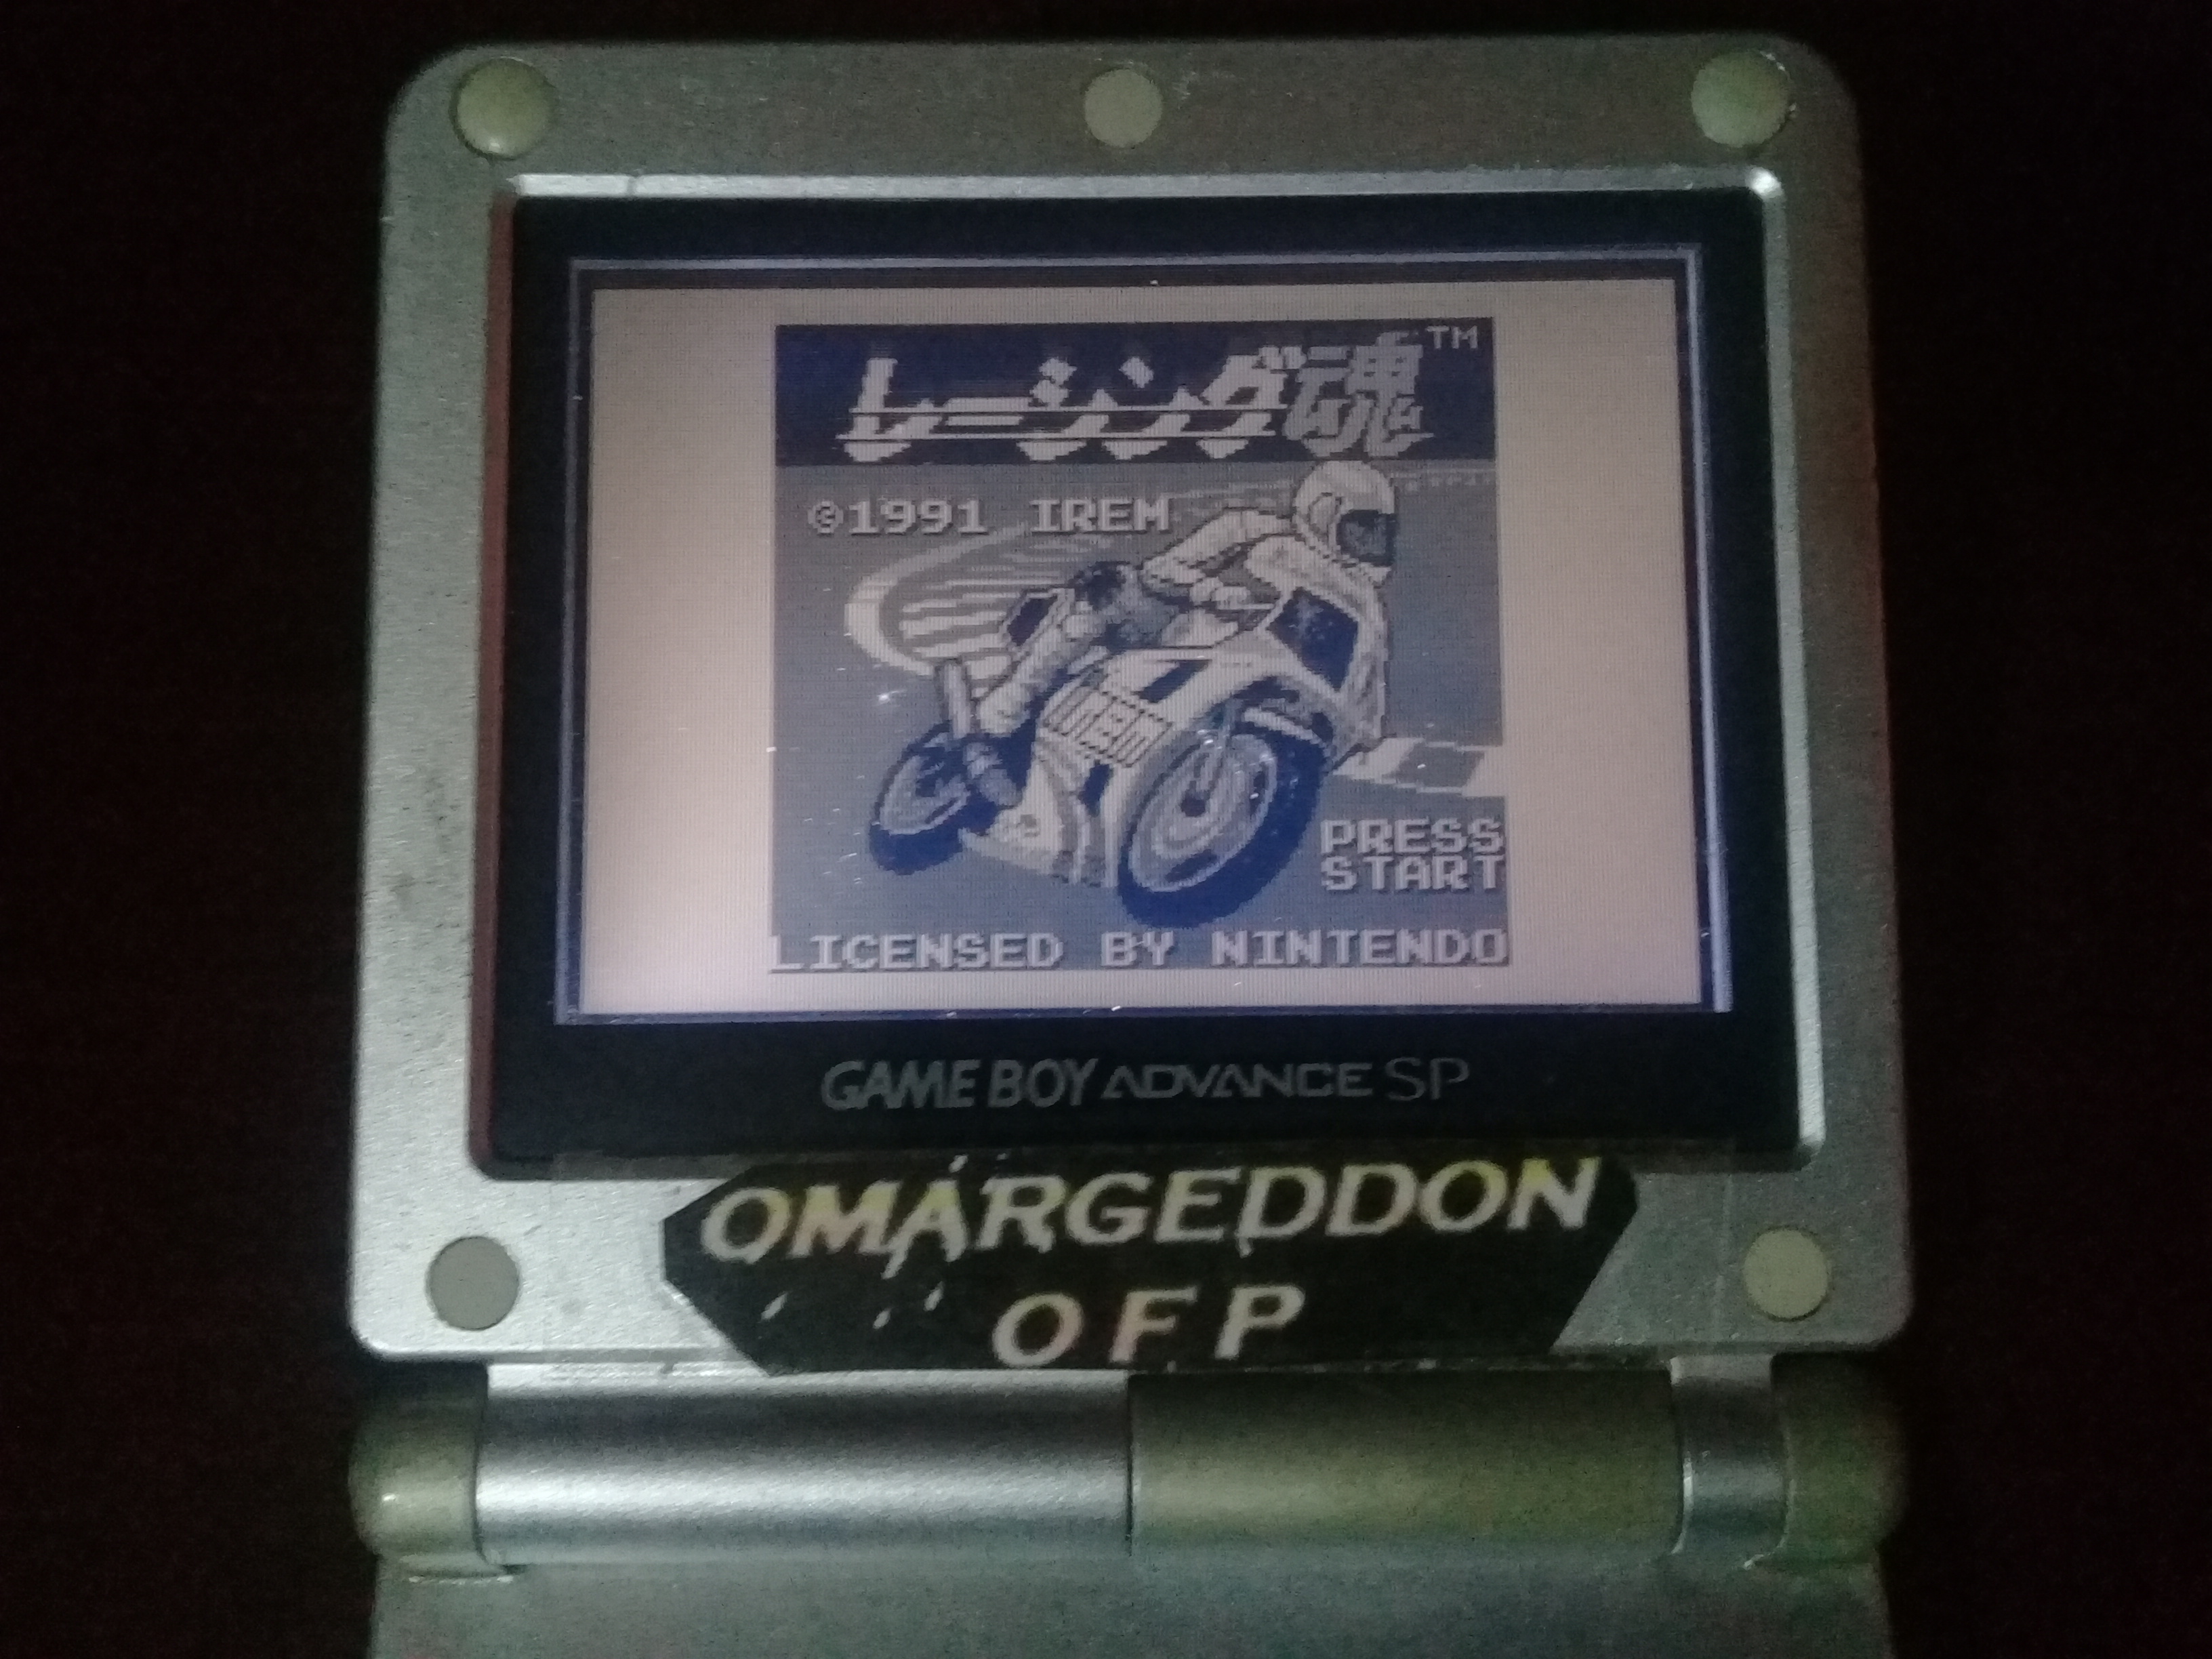 omargeddon: Racing Tamashii: Suzuka Circuit [Practice] (Game Boy) 0:04:58.2 points on 2020-06-07 16:12:08